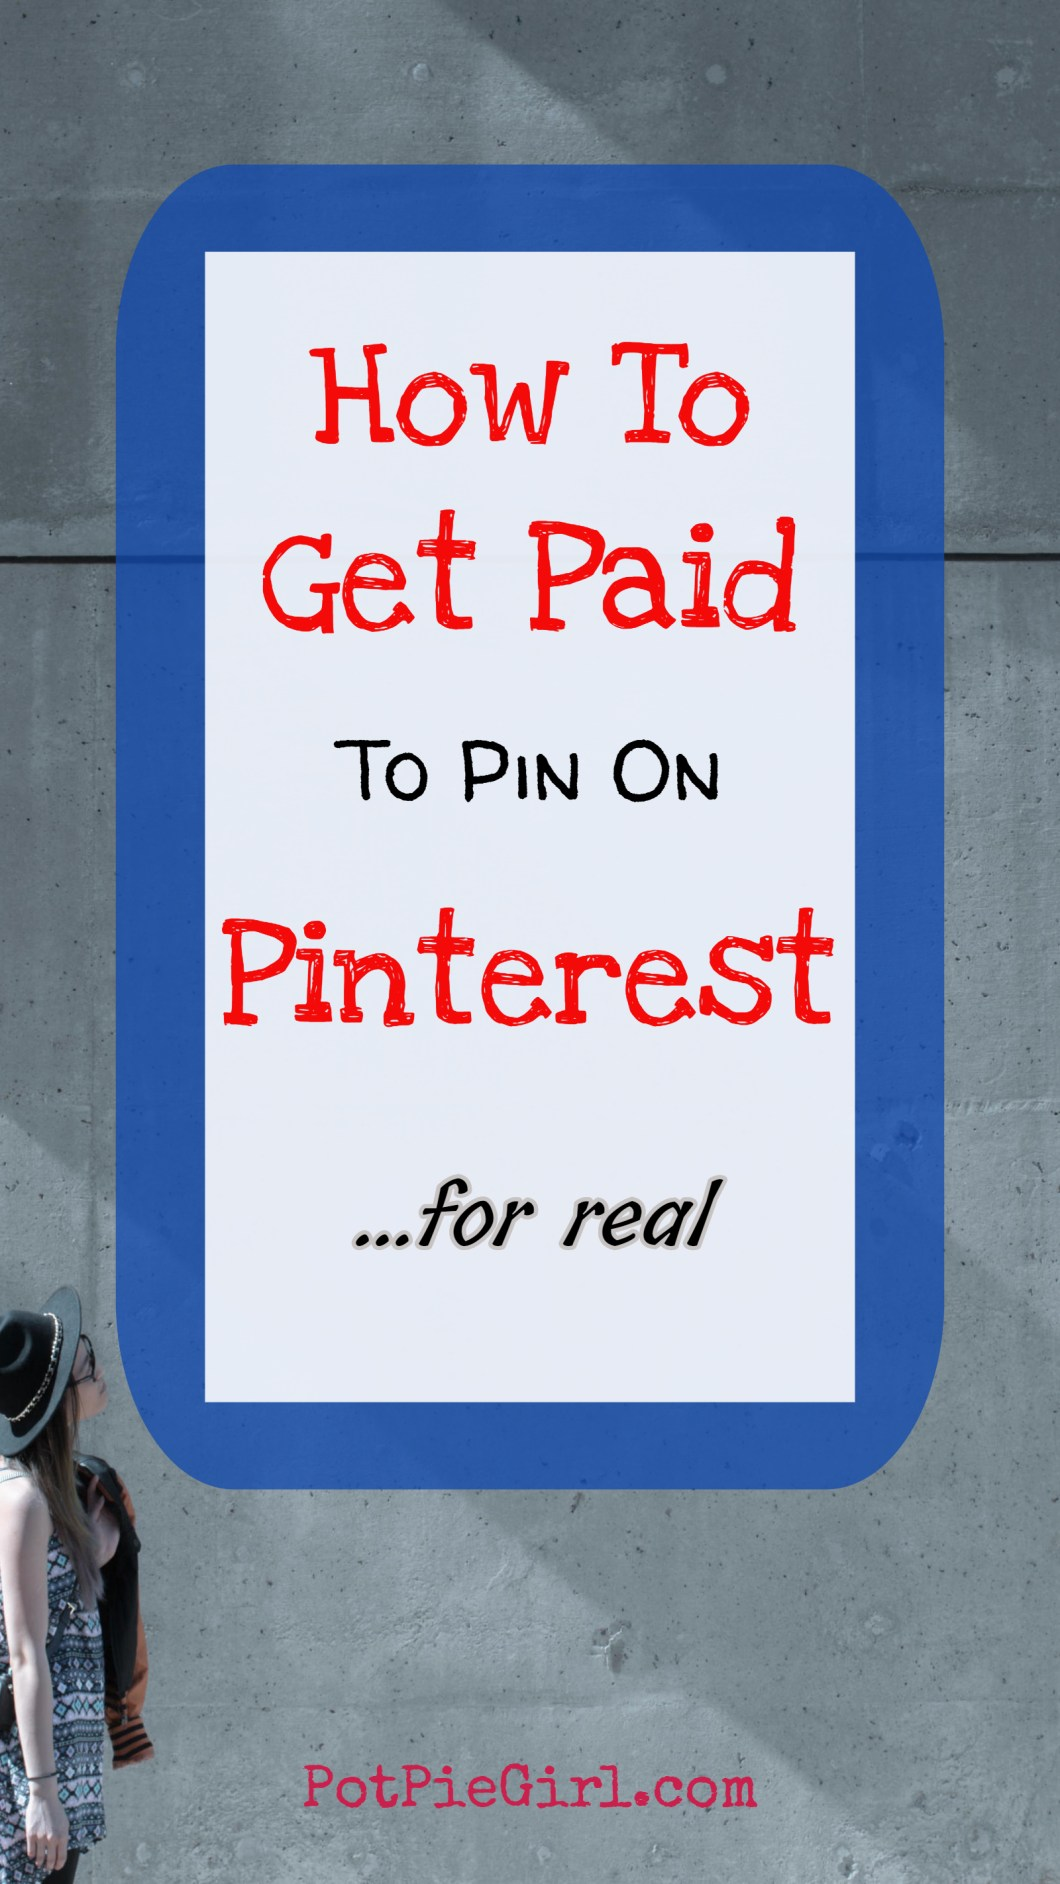 How to get paid to pin on Pinterest - YES!  Make money pinning on Pinterest... for real!  Very smart idea!